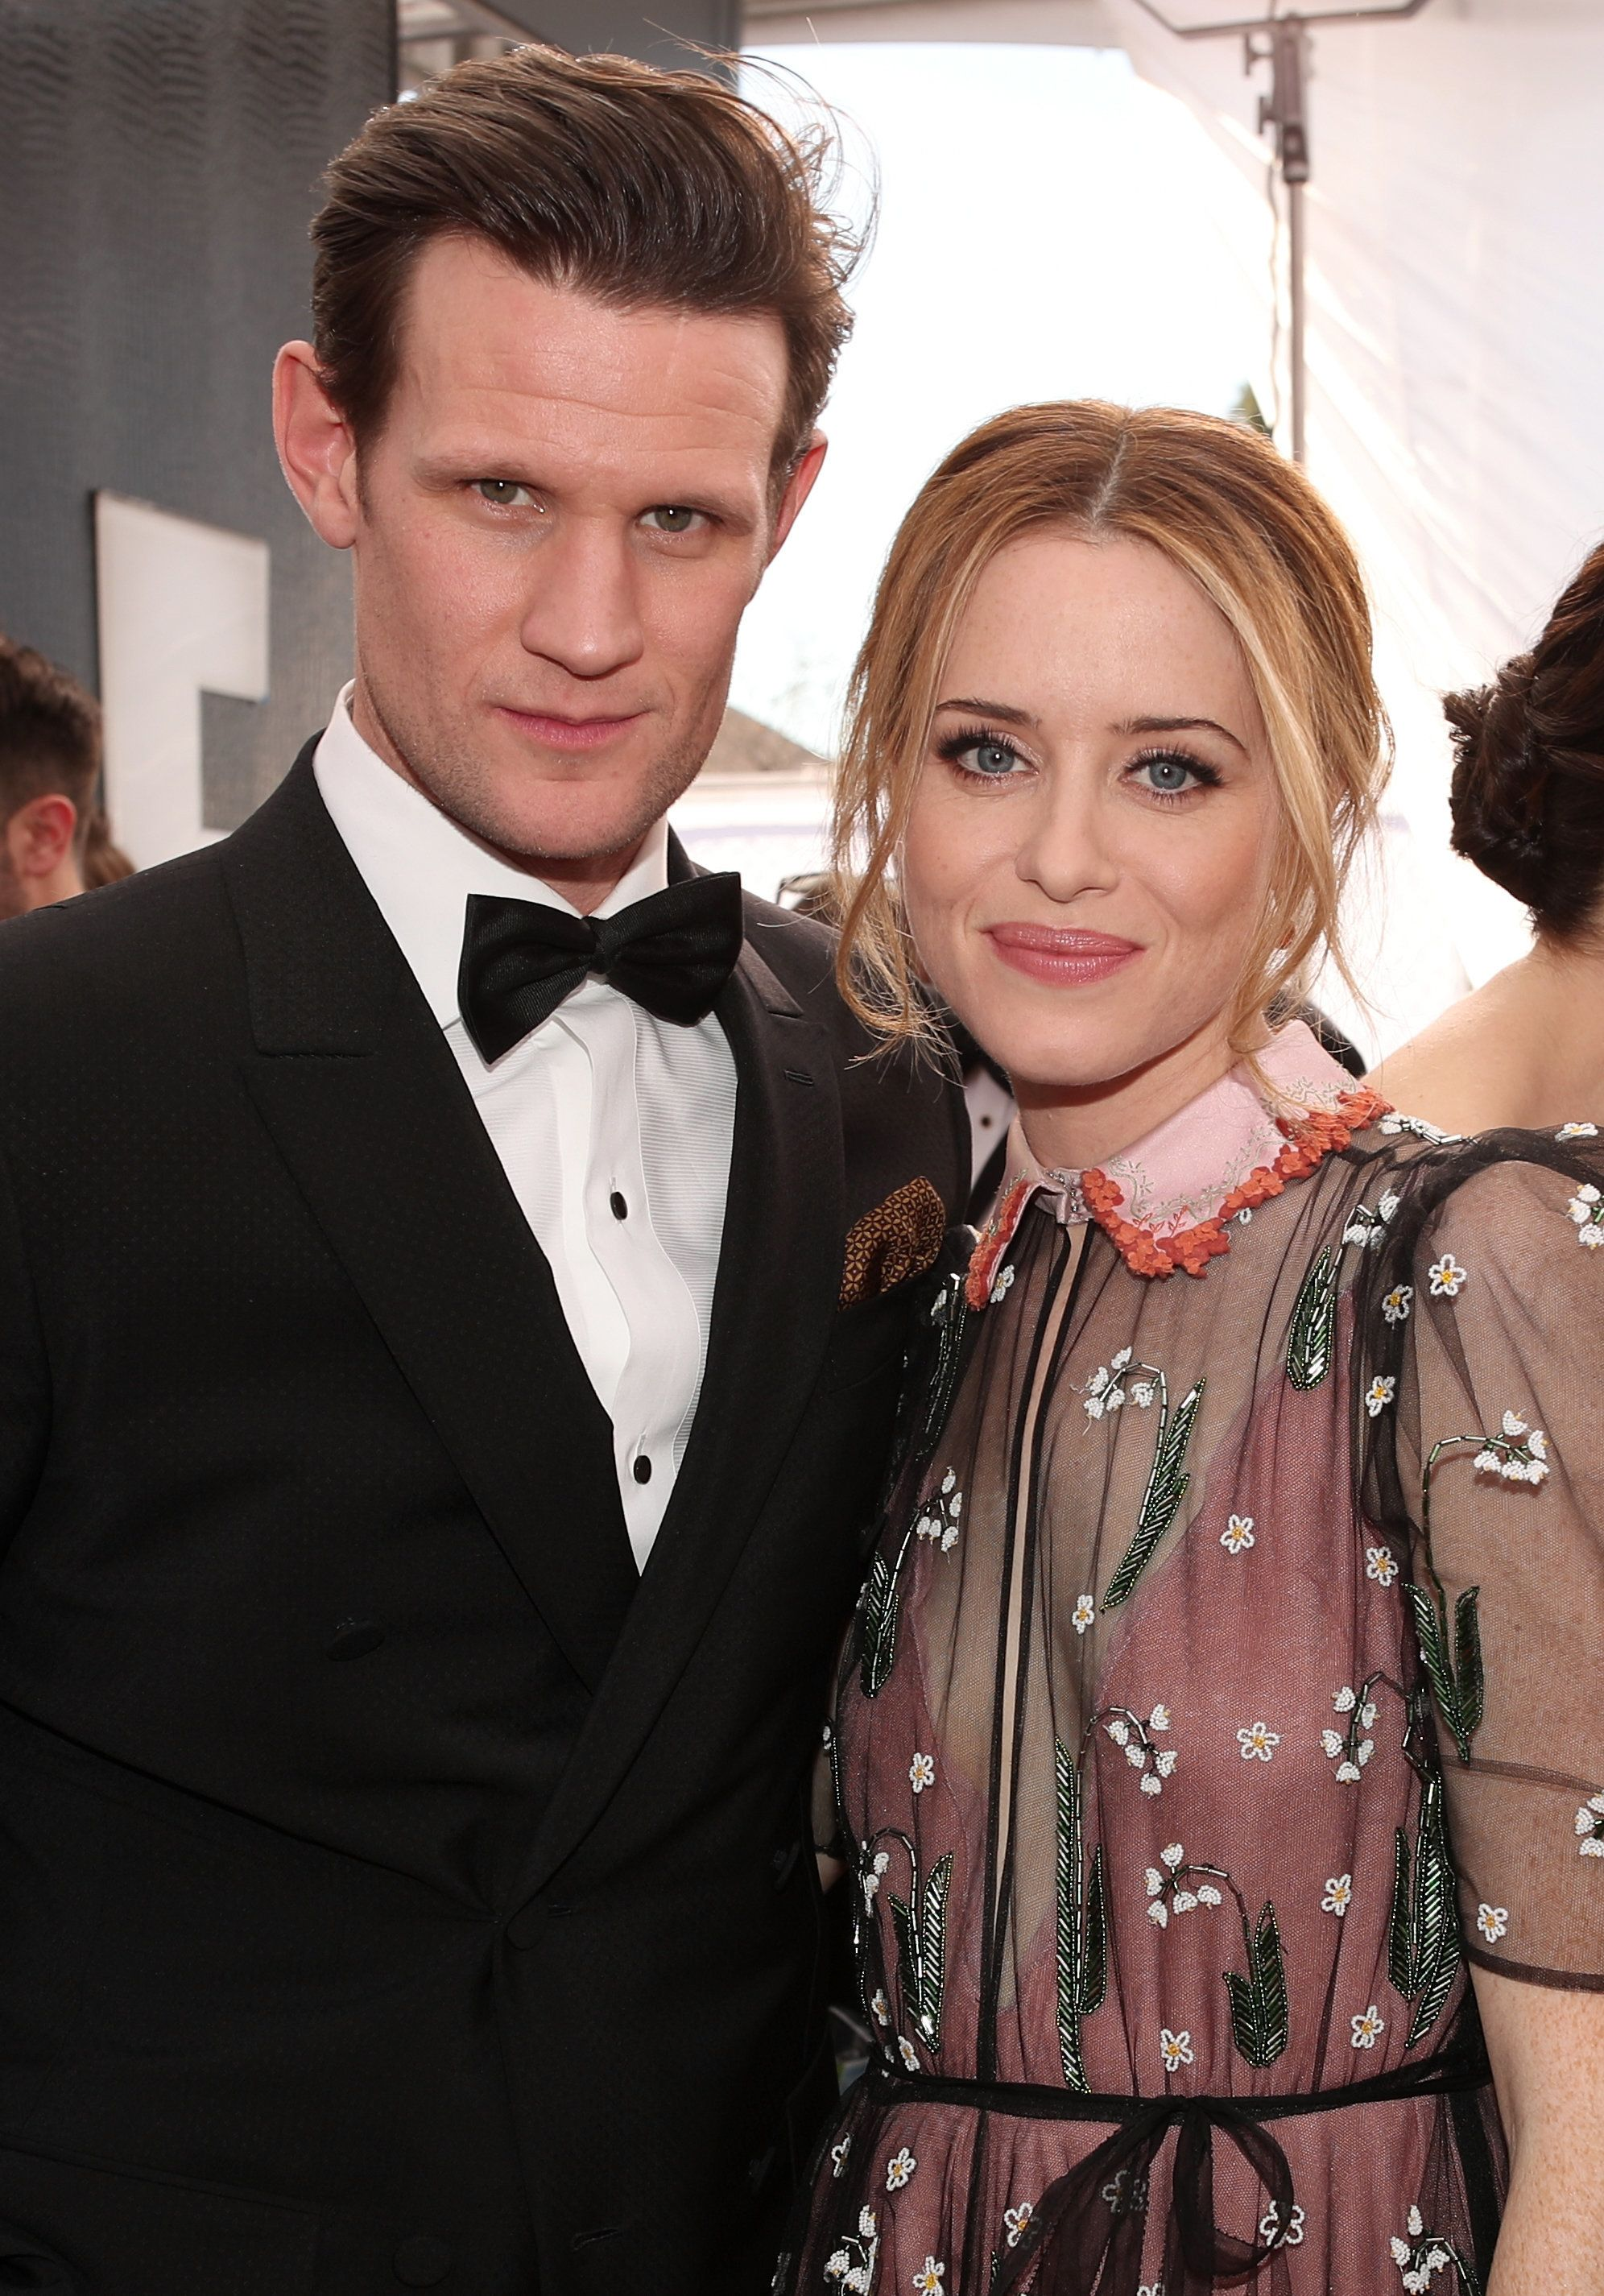 LOS ANGELES, CA - JANUARY 29: Actors Matt Smith and Claire Foy attend The 23rd Annual Screen Actors Guild Awards at The Shrine Auditorium on January 29, 2017 in Los Angeles, California. 26592_012  (Photo by Christopher Polk/Getty Images for TNT)